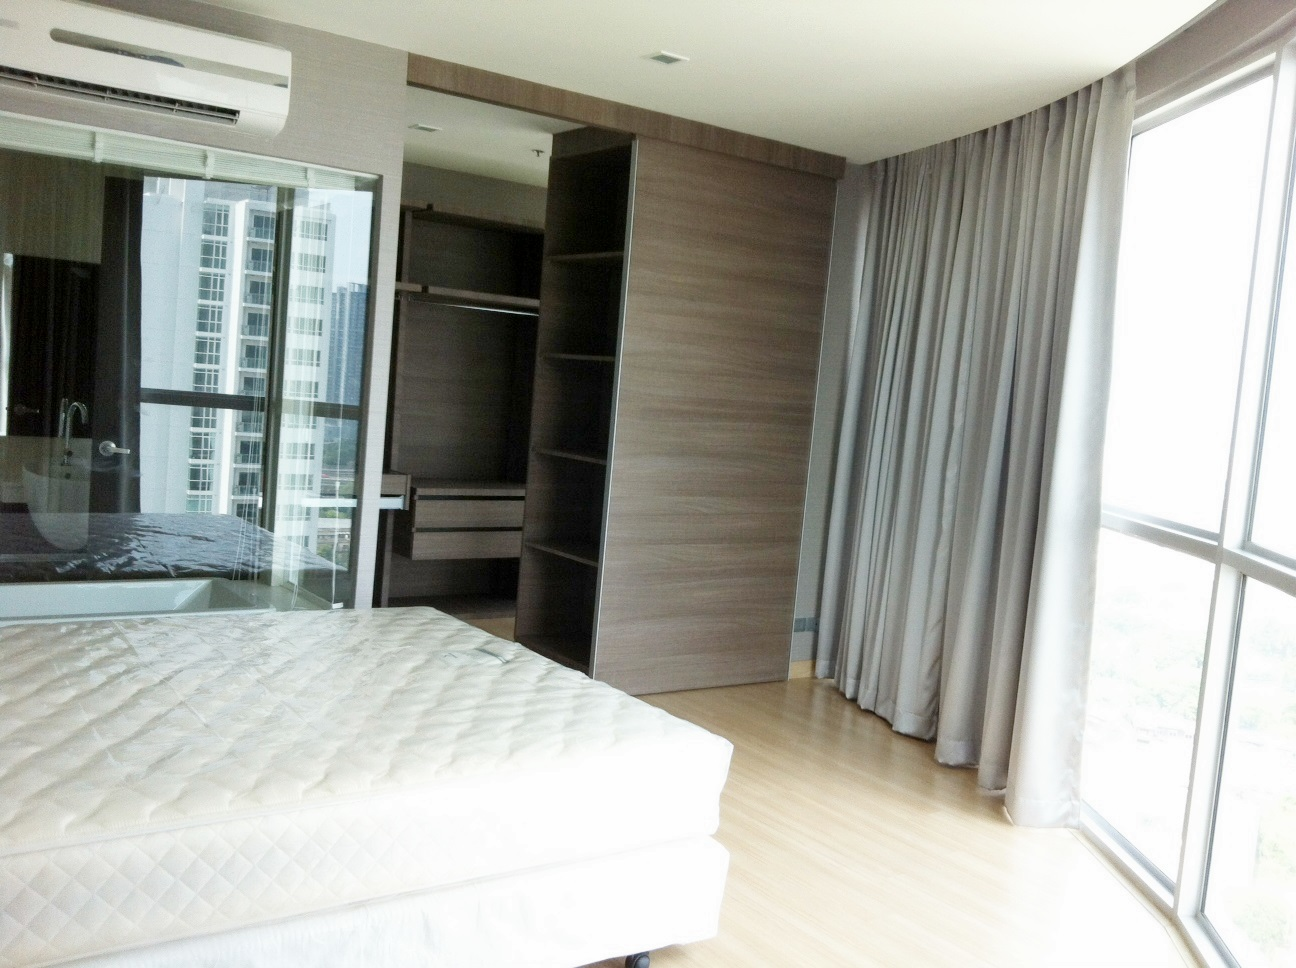 RE/MAX Properties Agency's RENT 1 Bedroom 52 Sq.m at Sky Walk condominium 4